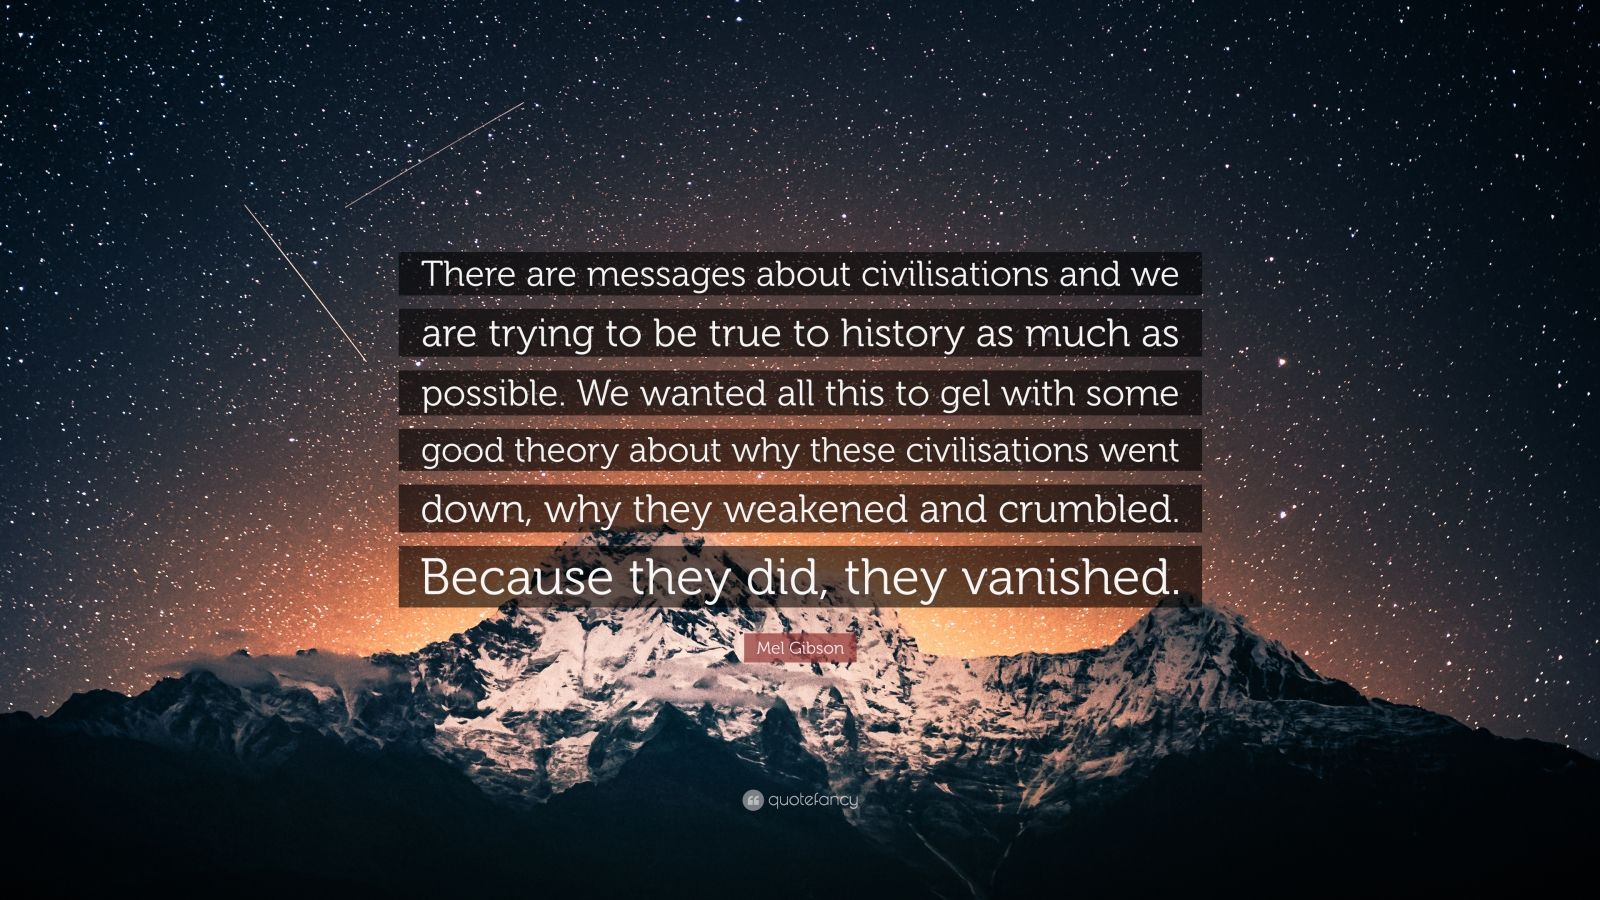 """Mel Gibson Quote: """"There are messages about civilisations and we are trying to be true to history as much as possible. We wanted all this to gel with some good theory about why these civilisations went down, why they weakened and crumbled. Because they did, they vanished."""""""